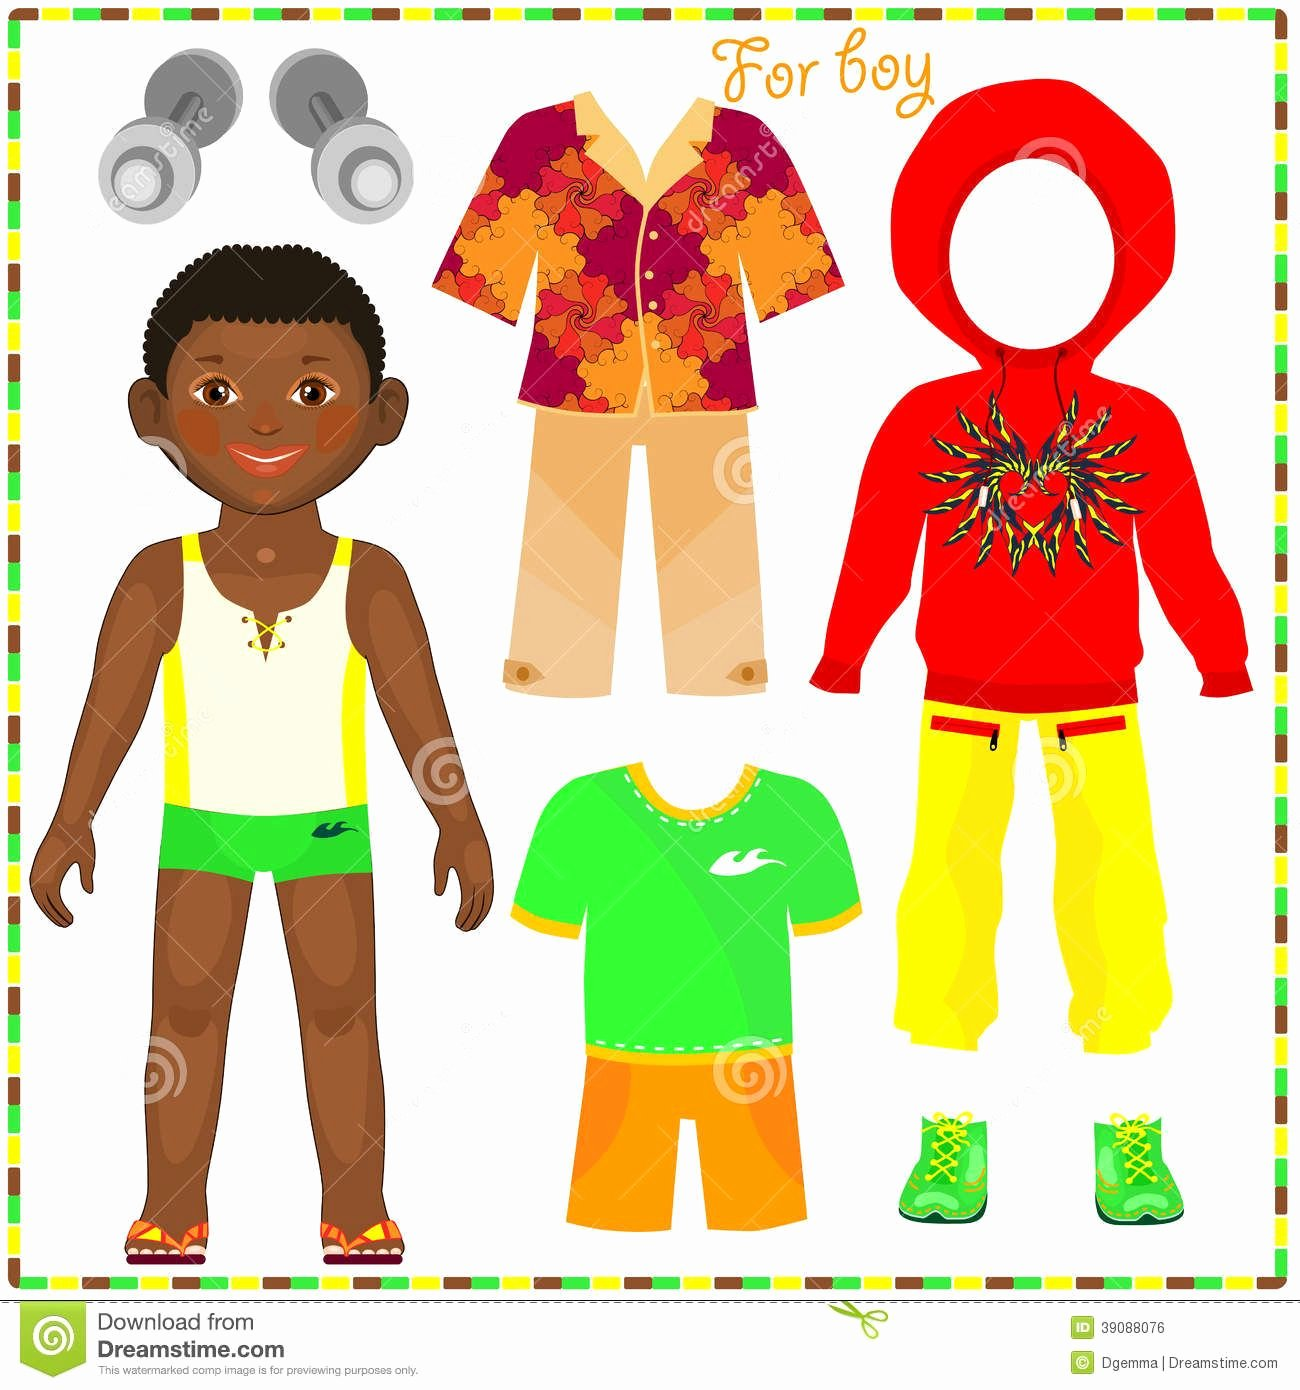 Paper Doll Clothing Template Unique Boy Paper Doll Template Black African American